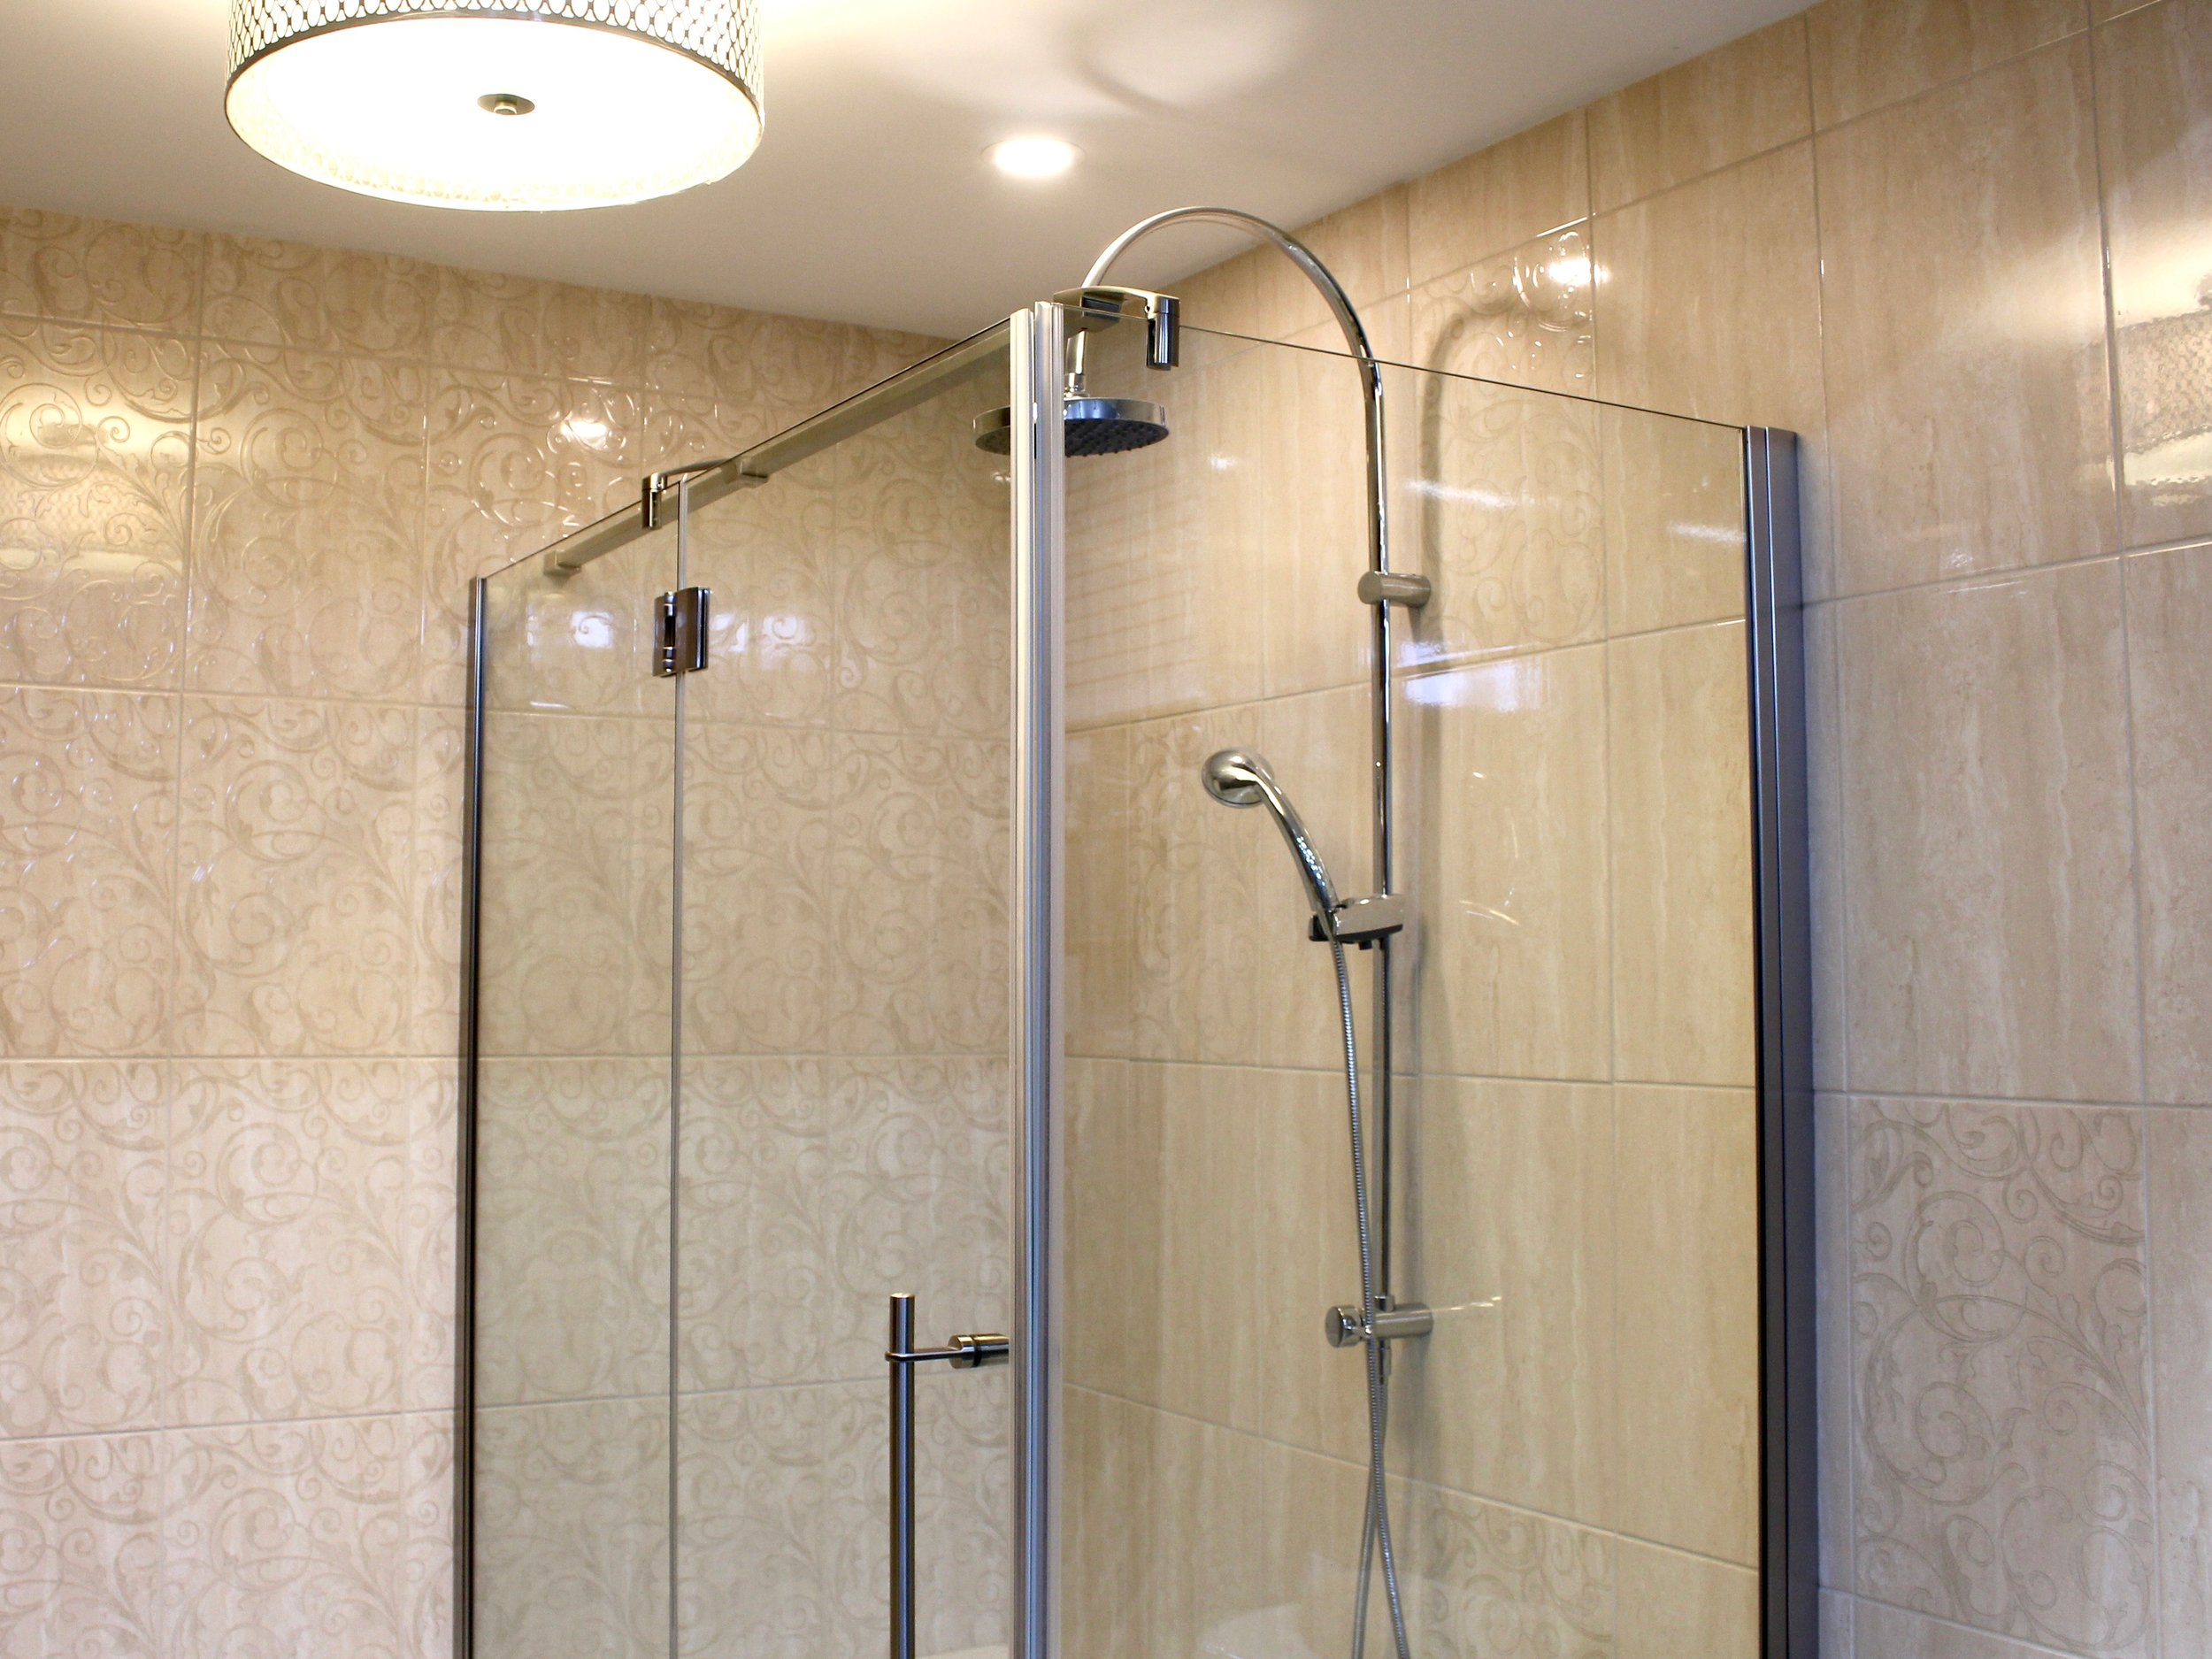 Glass Shower Stall with Combination Shower Head & Rail